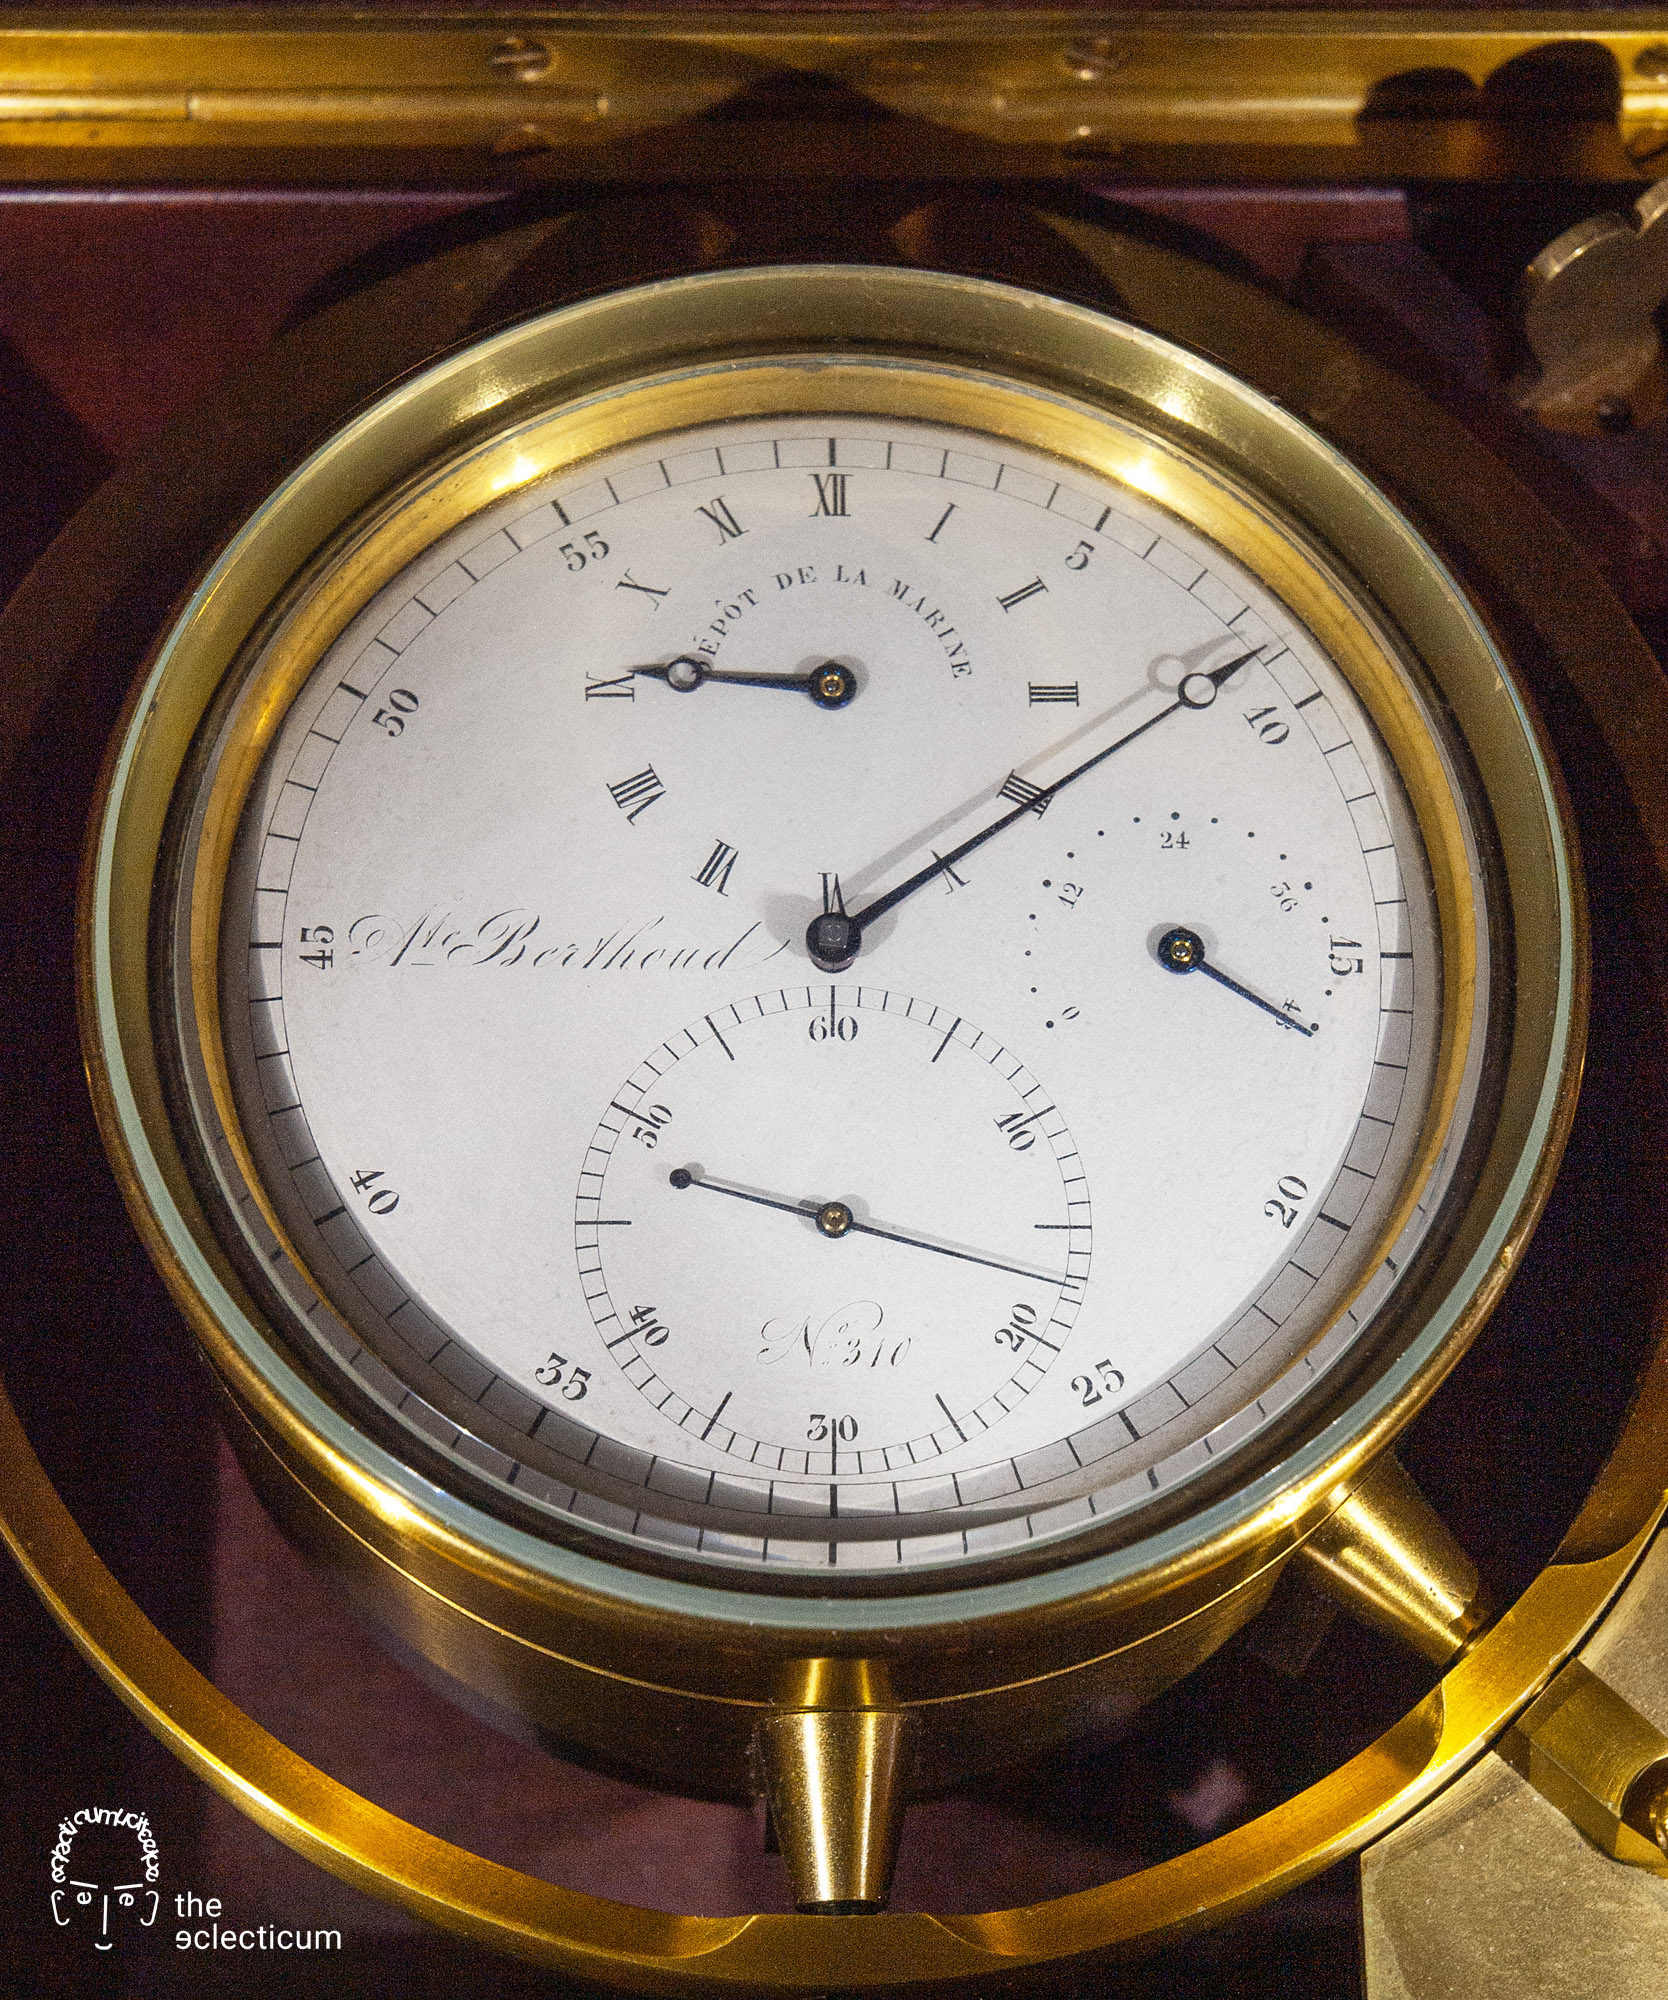 Ferdinand Berthoud marine chronometer Depot Scheufele collection